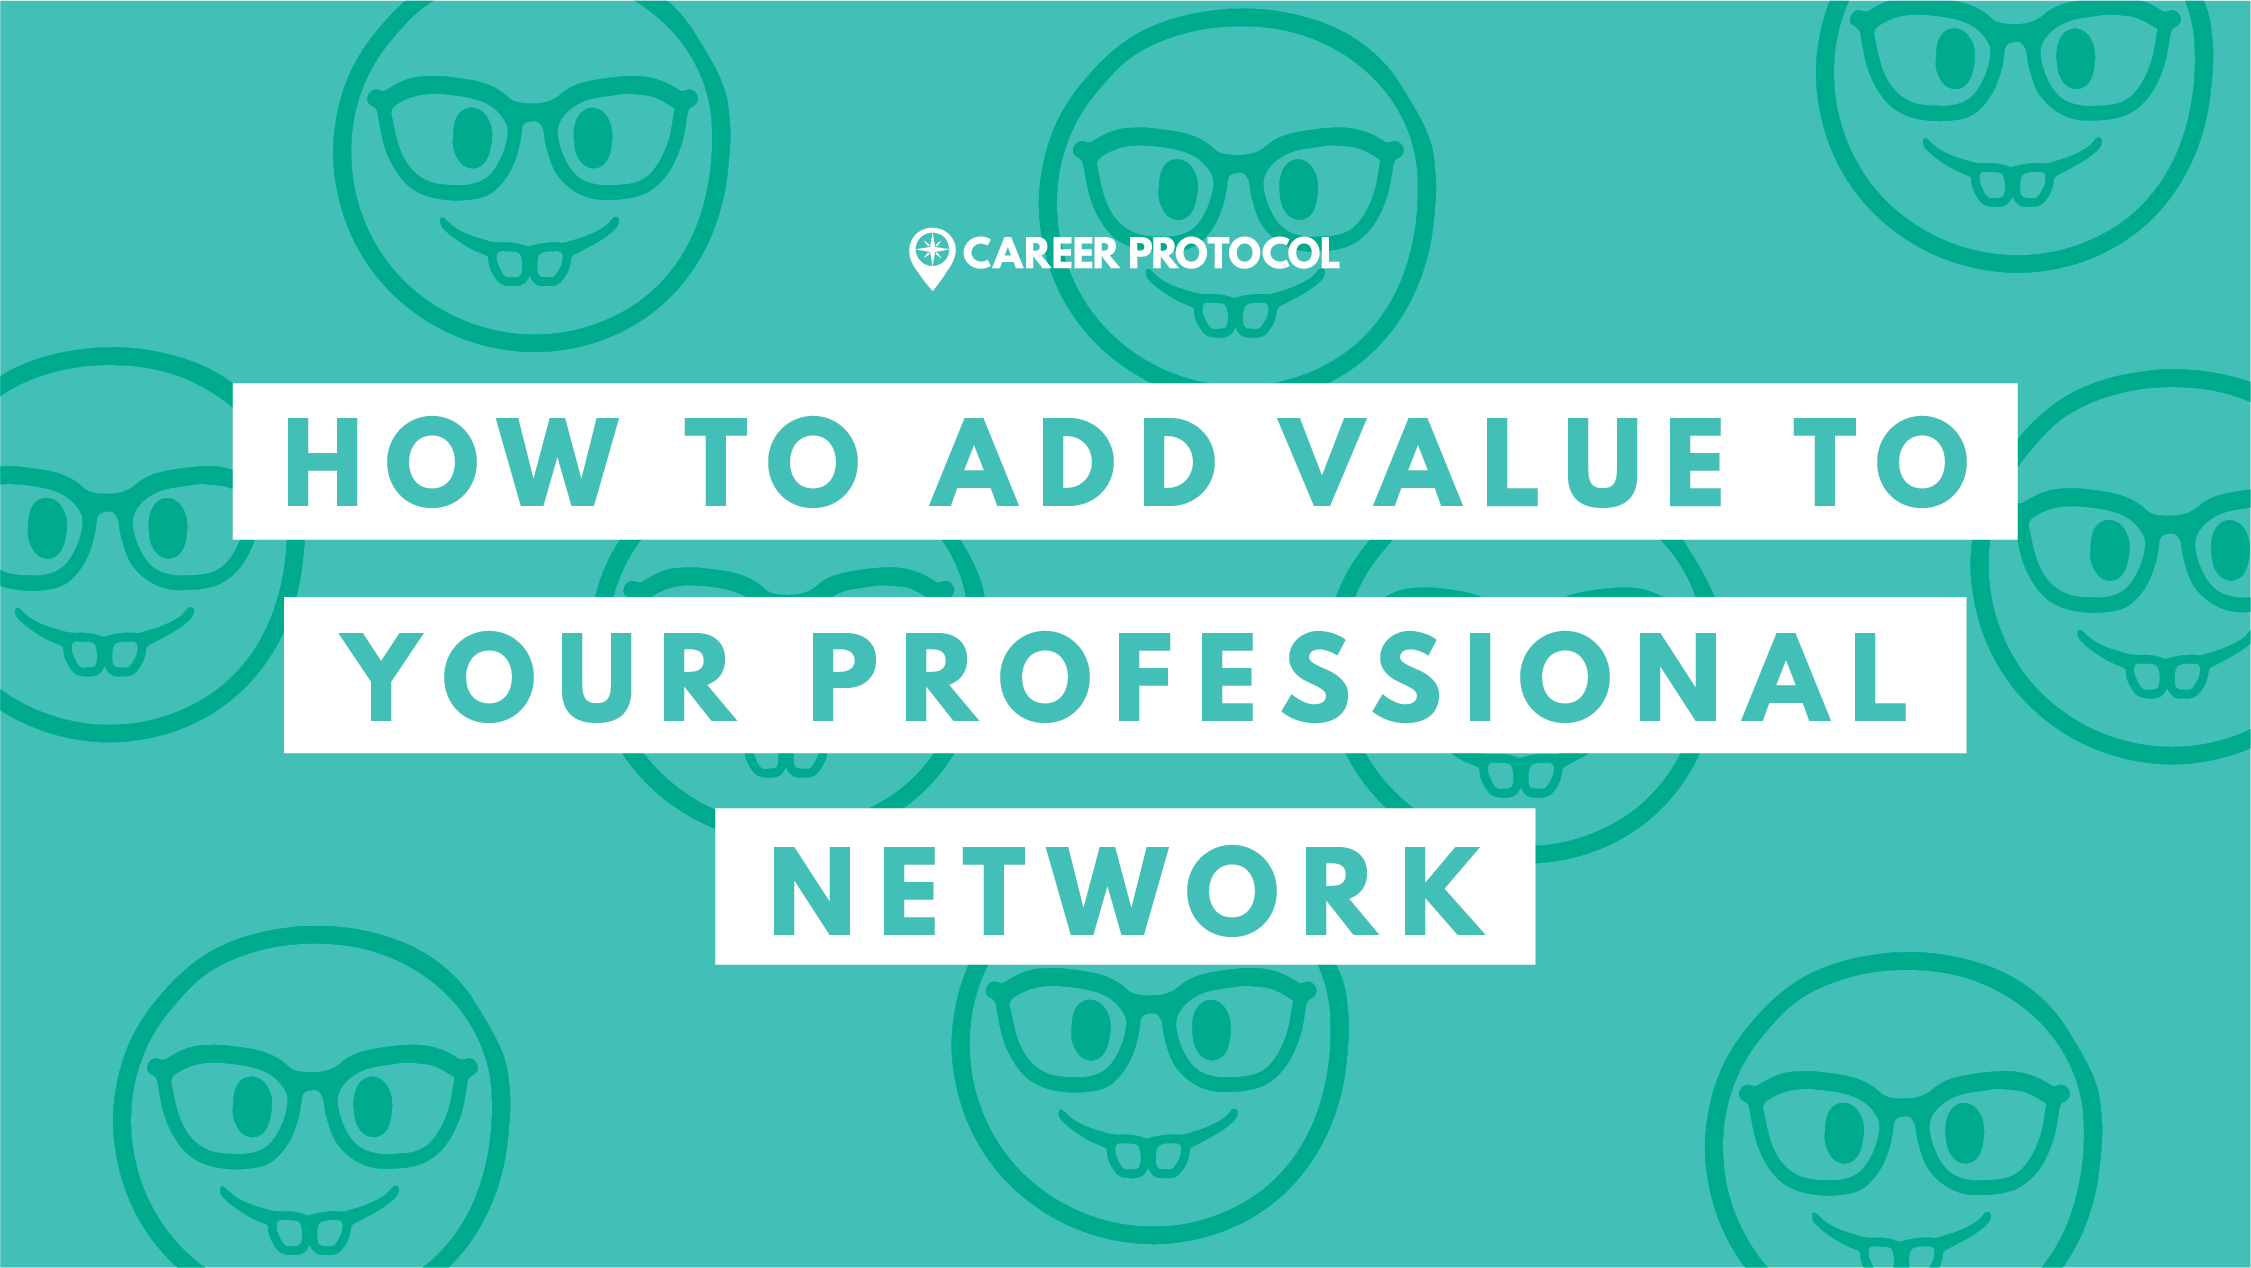 How to Add Value to Your Professional Network